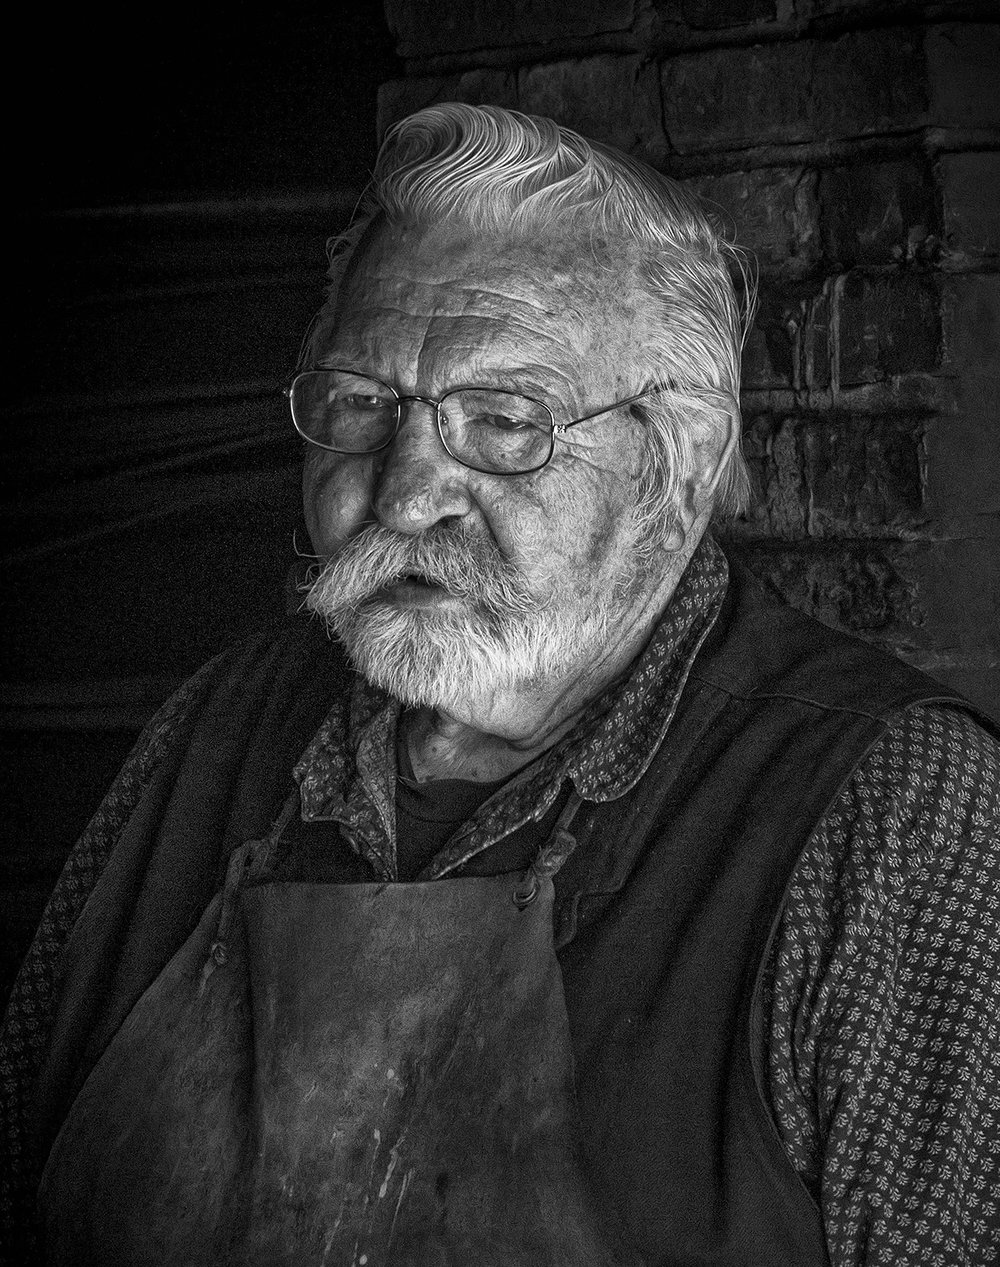 MG_9990blacksmith-B+W-website.jpg